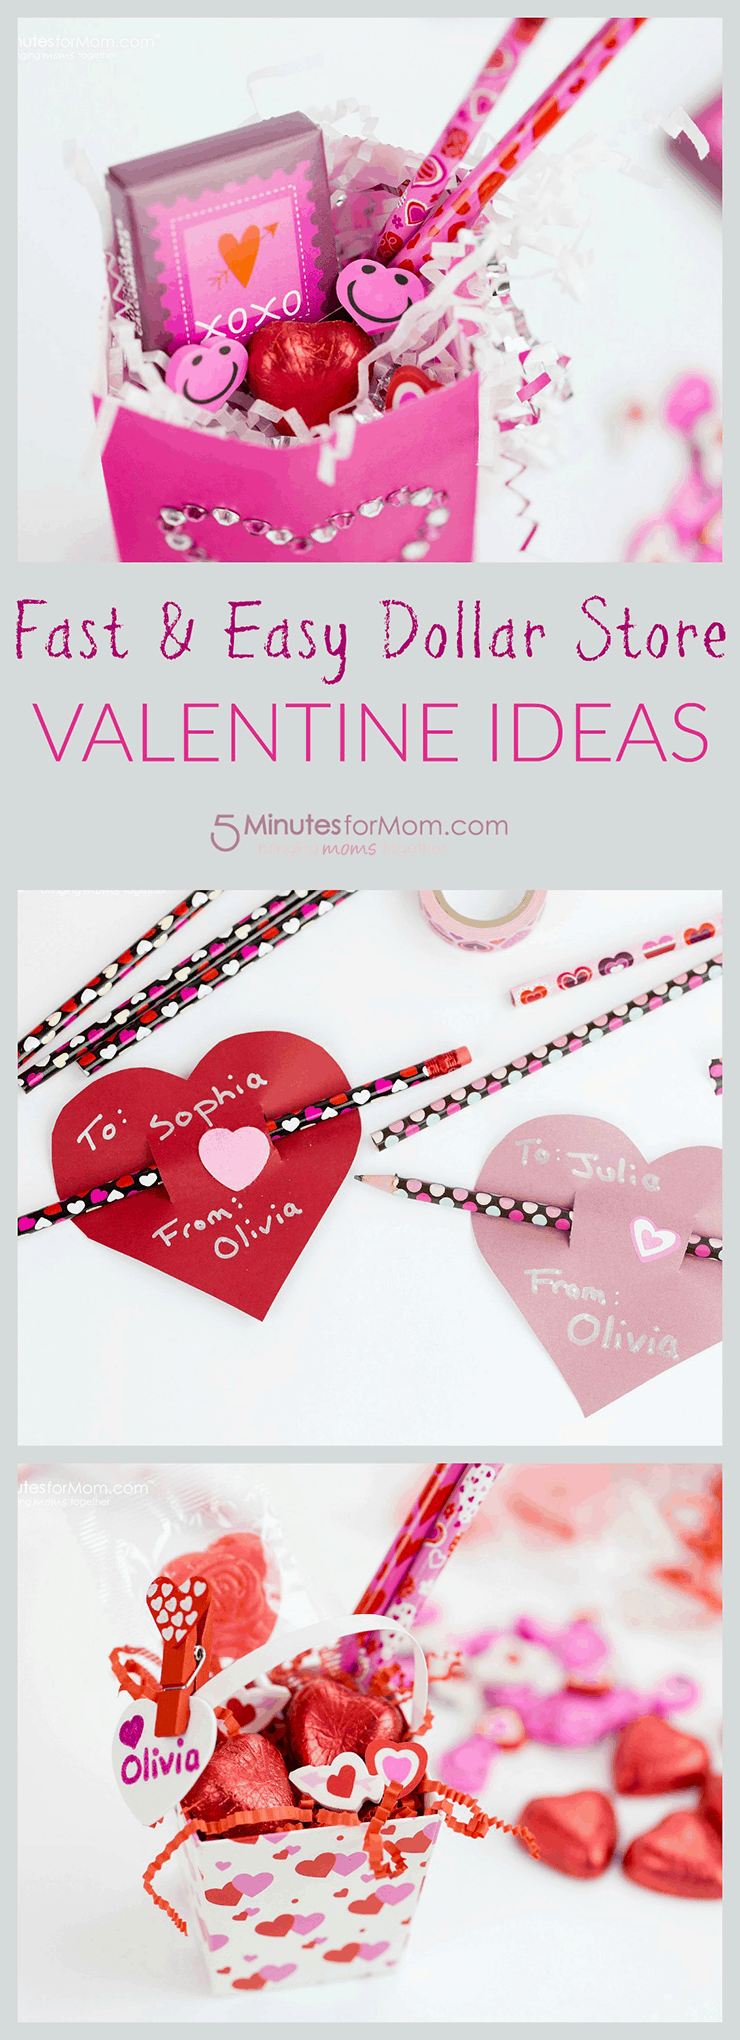 Valentine Dollar Store Ideas